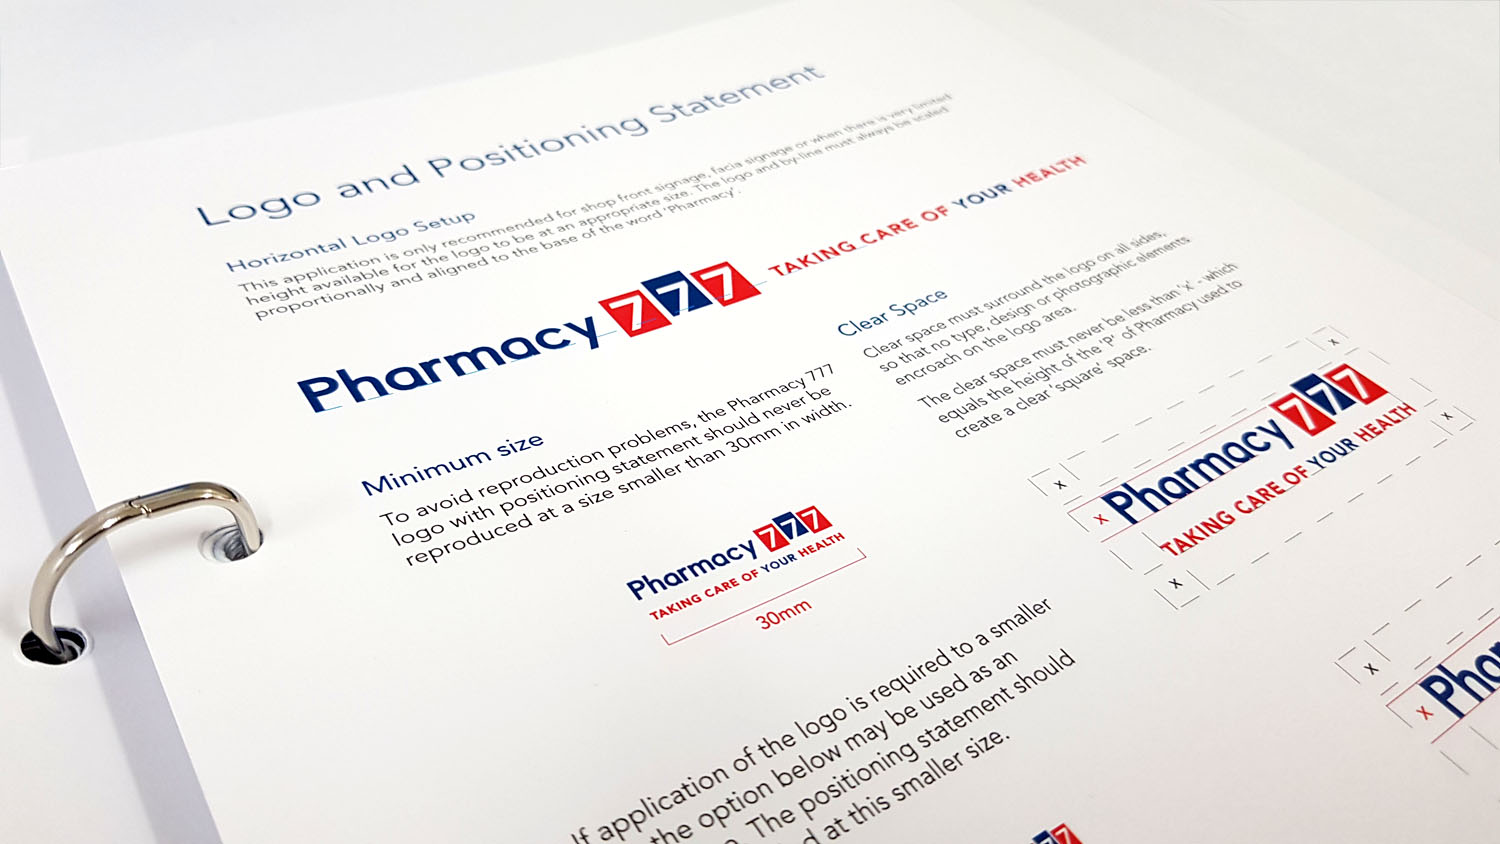 pharmacy-777_style-guide-angled-shot_sm